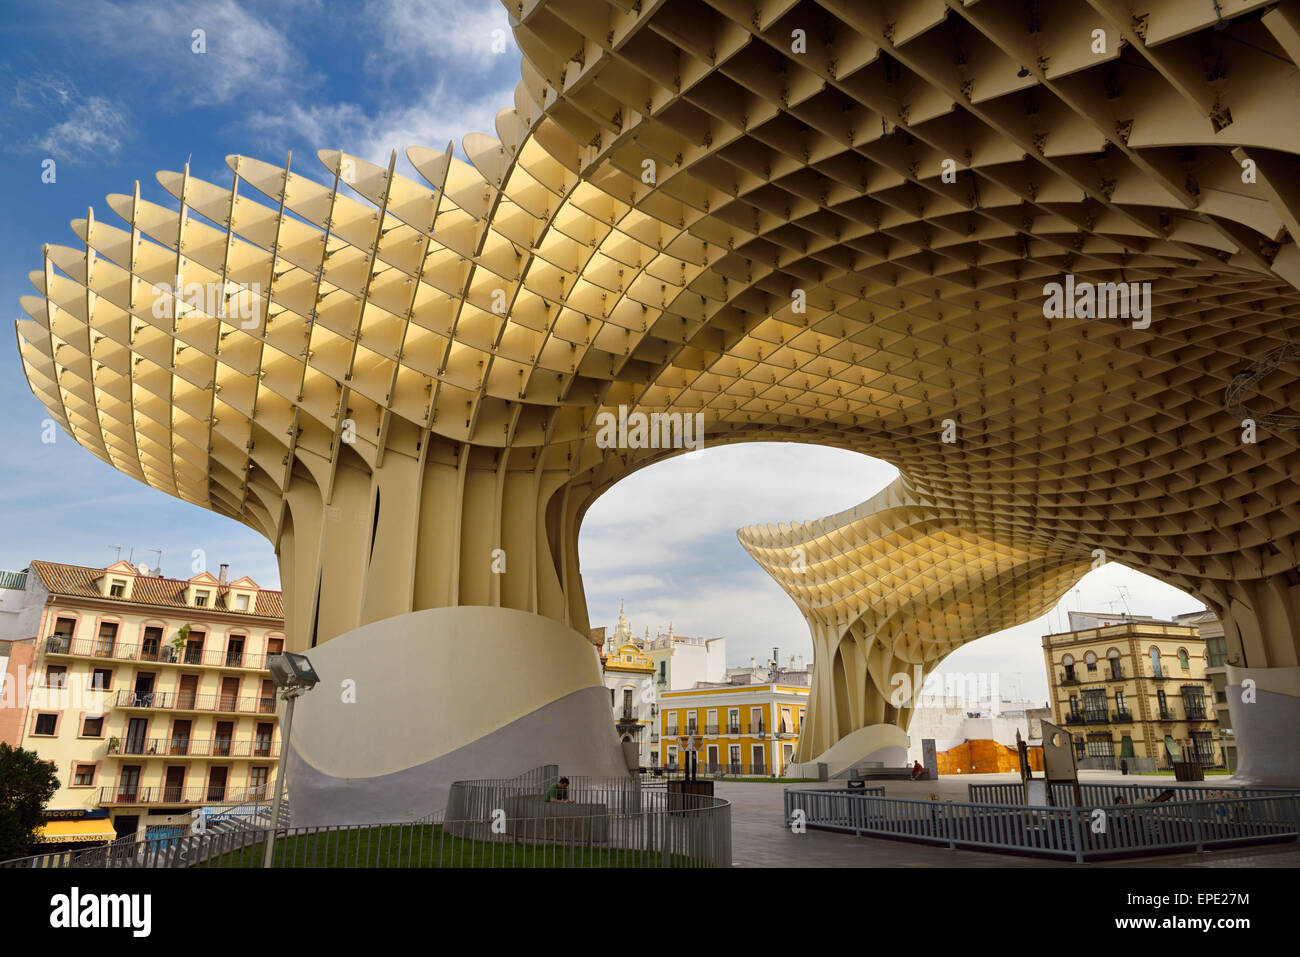 Mushroom canopy modern architecture of Metropol Parasol at Plaza of the Incarnation Seville Spain - Stock Image